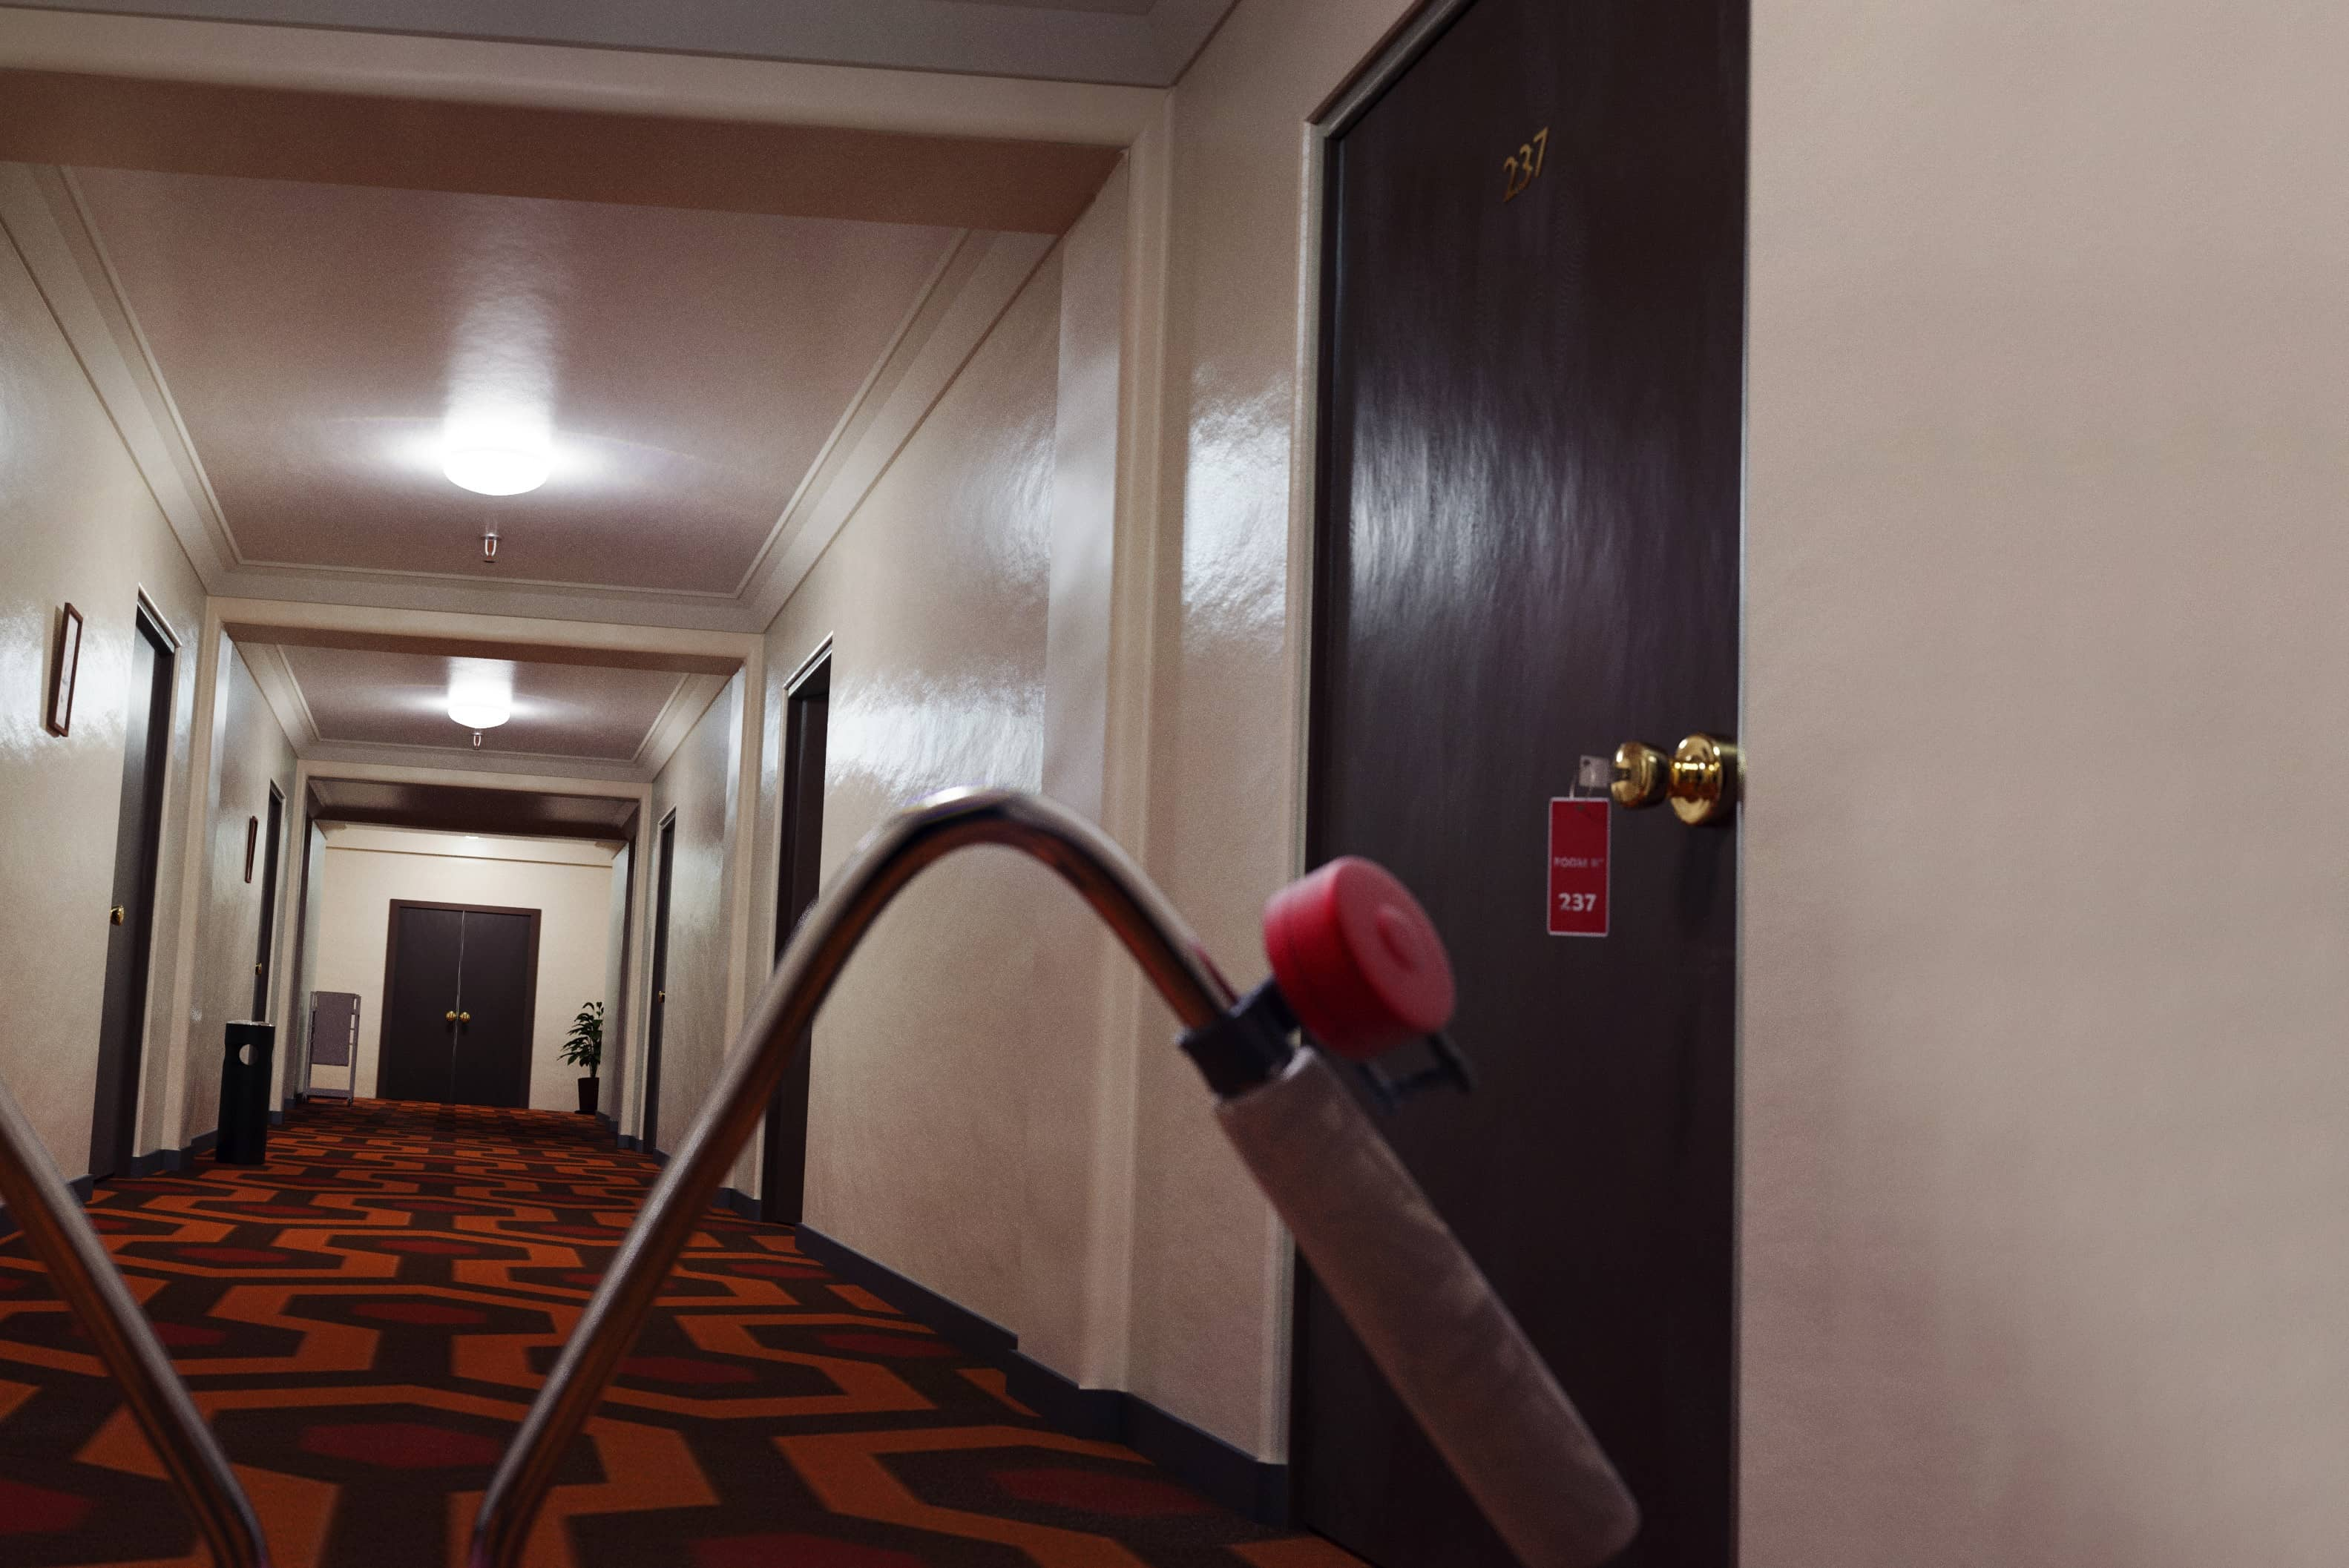 A Newly Restored 'The Shining' Debuts In Cannes